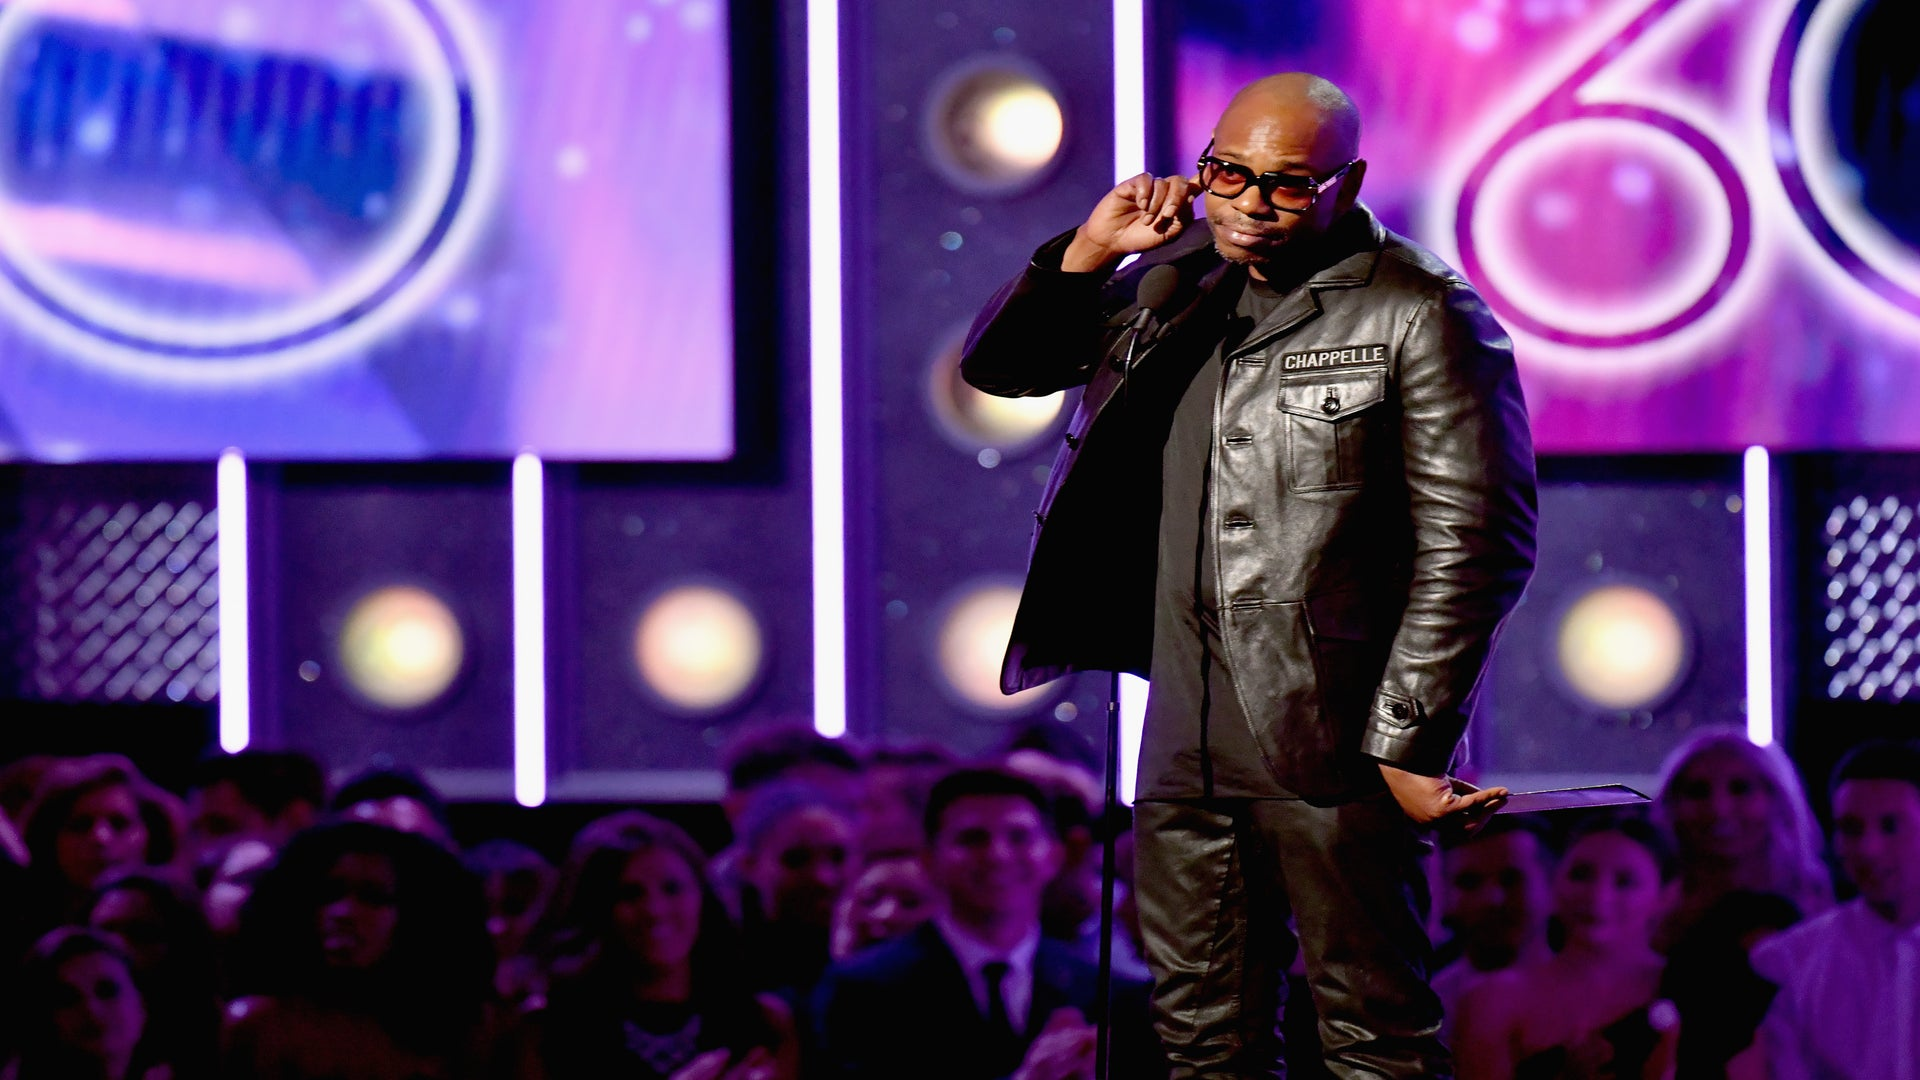 Dave Chappelle Gives Short And Hilarious Speech After Winning His First Grammy